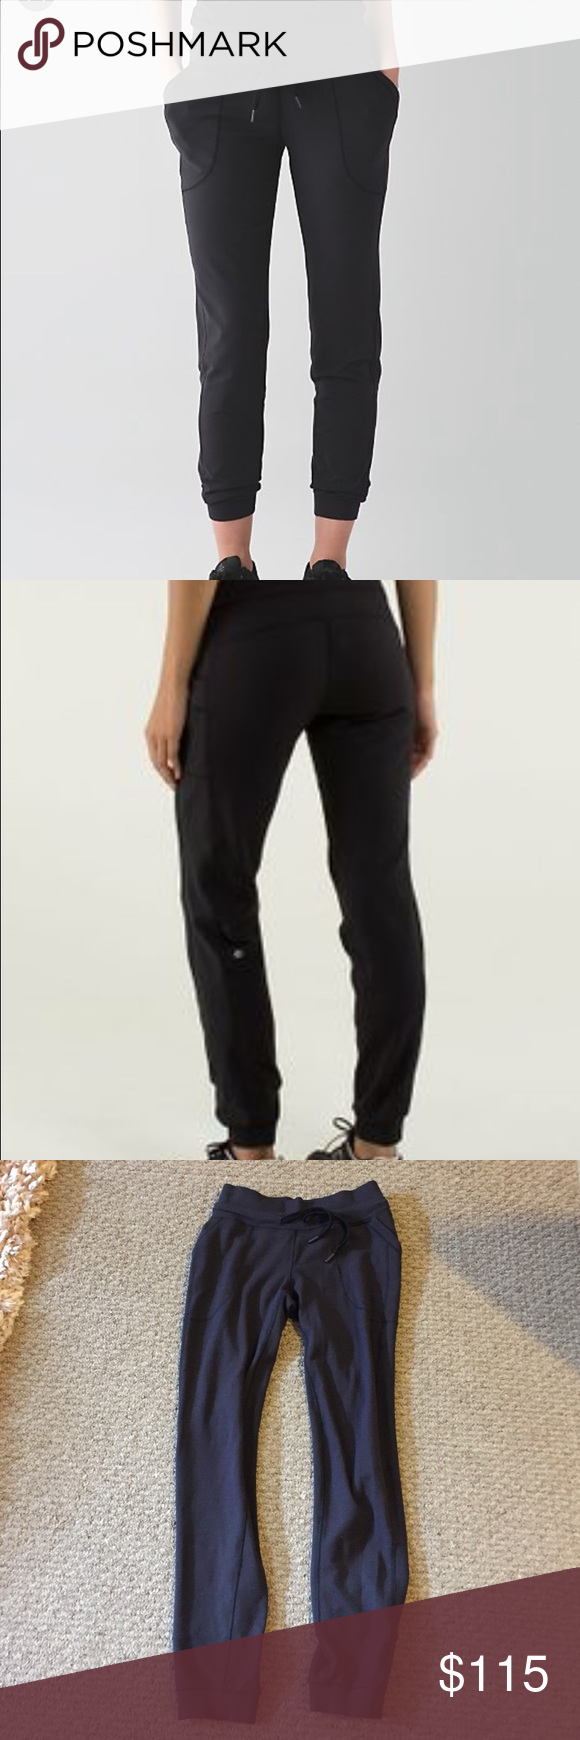 Lululemon base runner pants Like new, excellent condition, too big for me lululemon athletica Pants Track Pants & Joggers